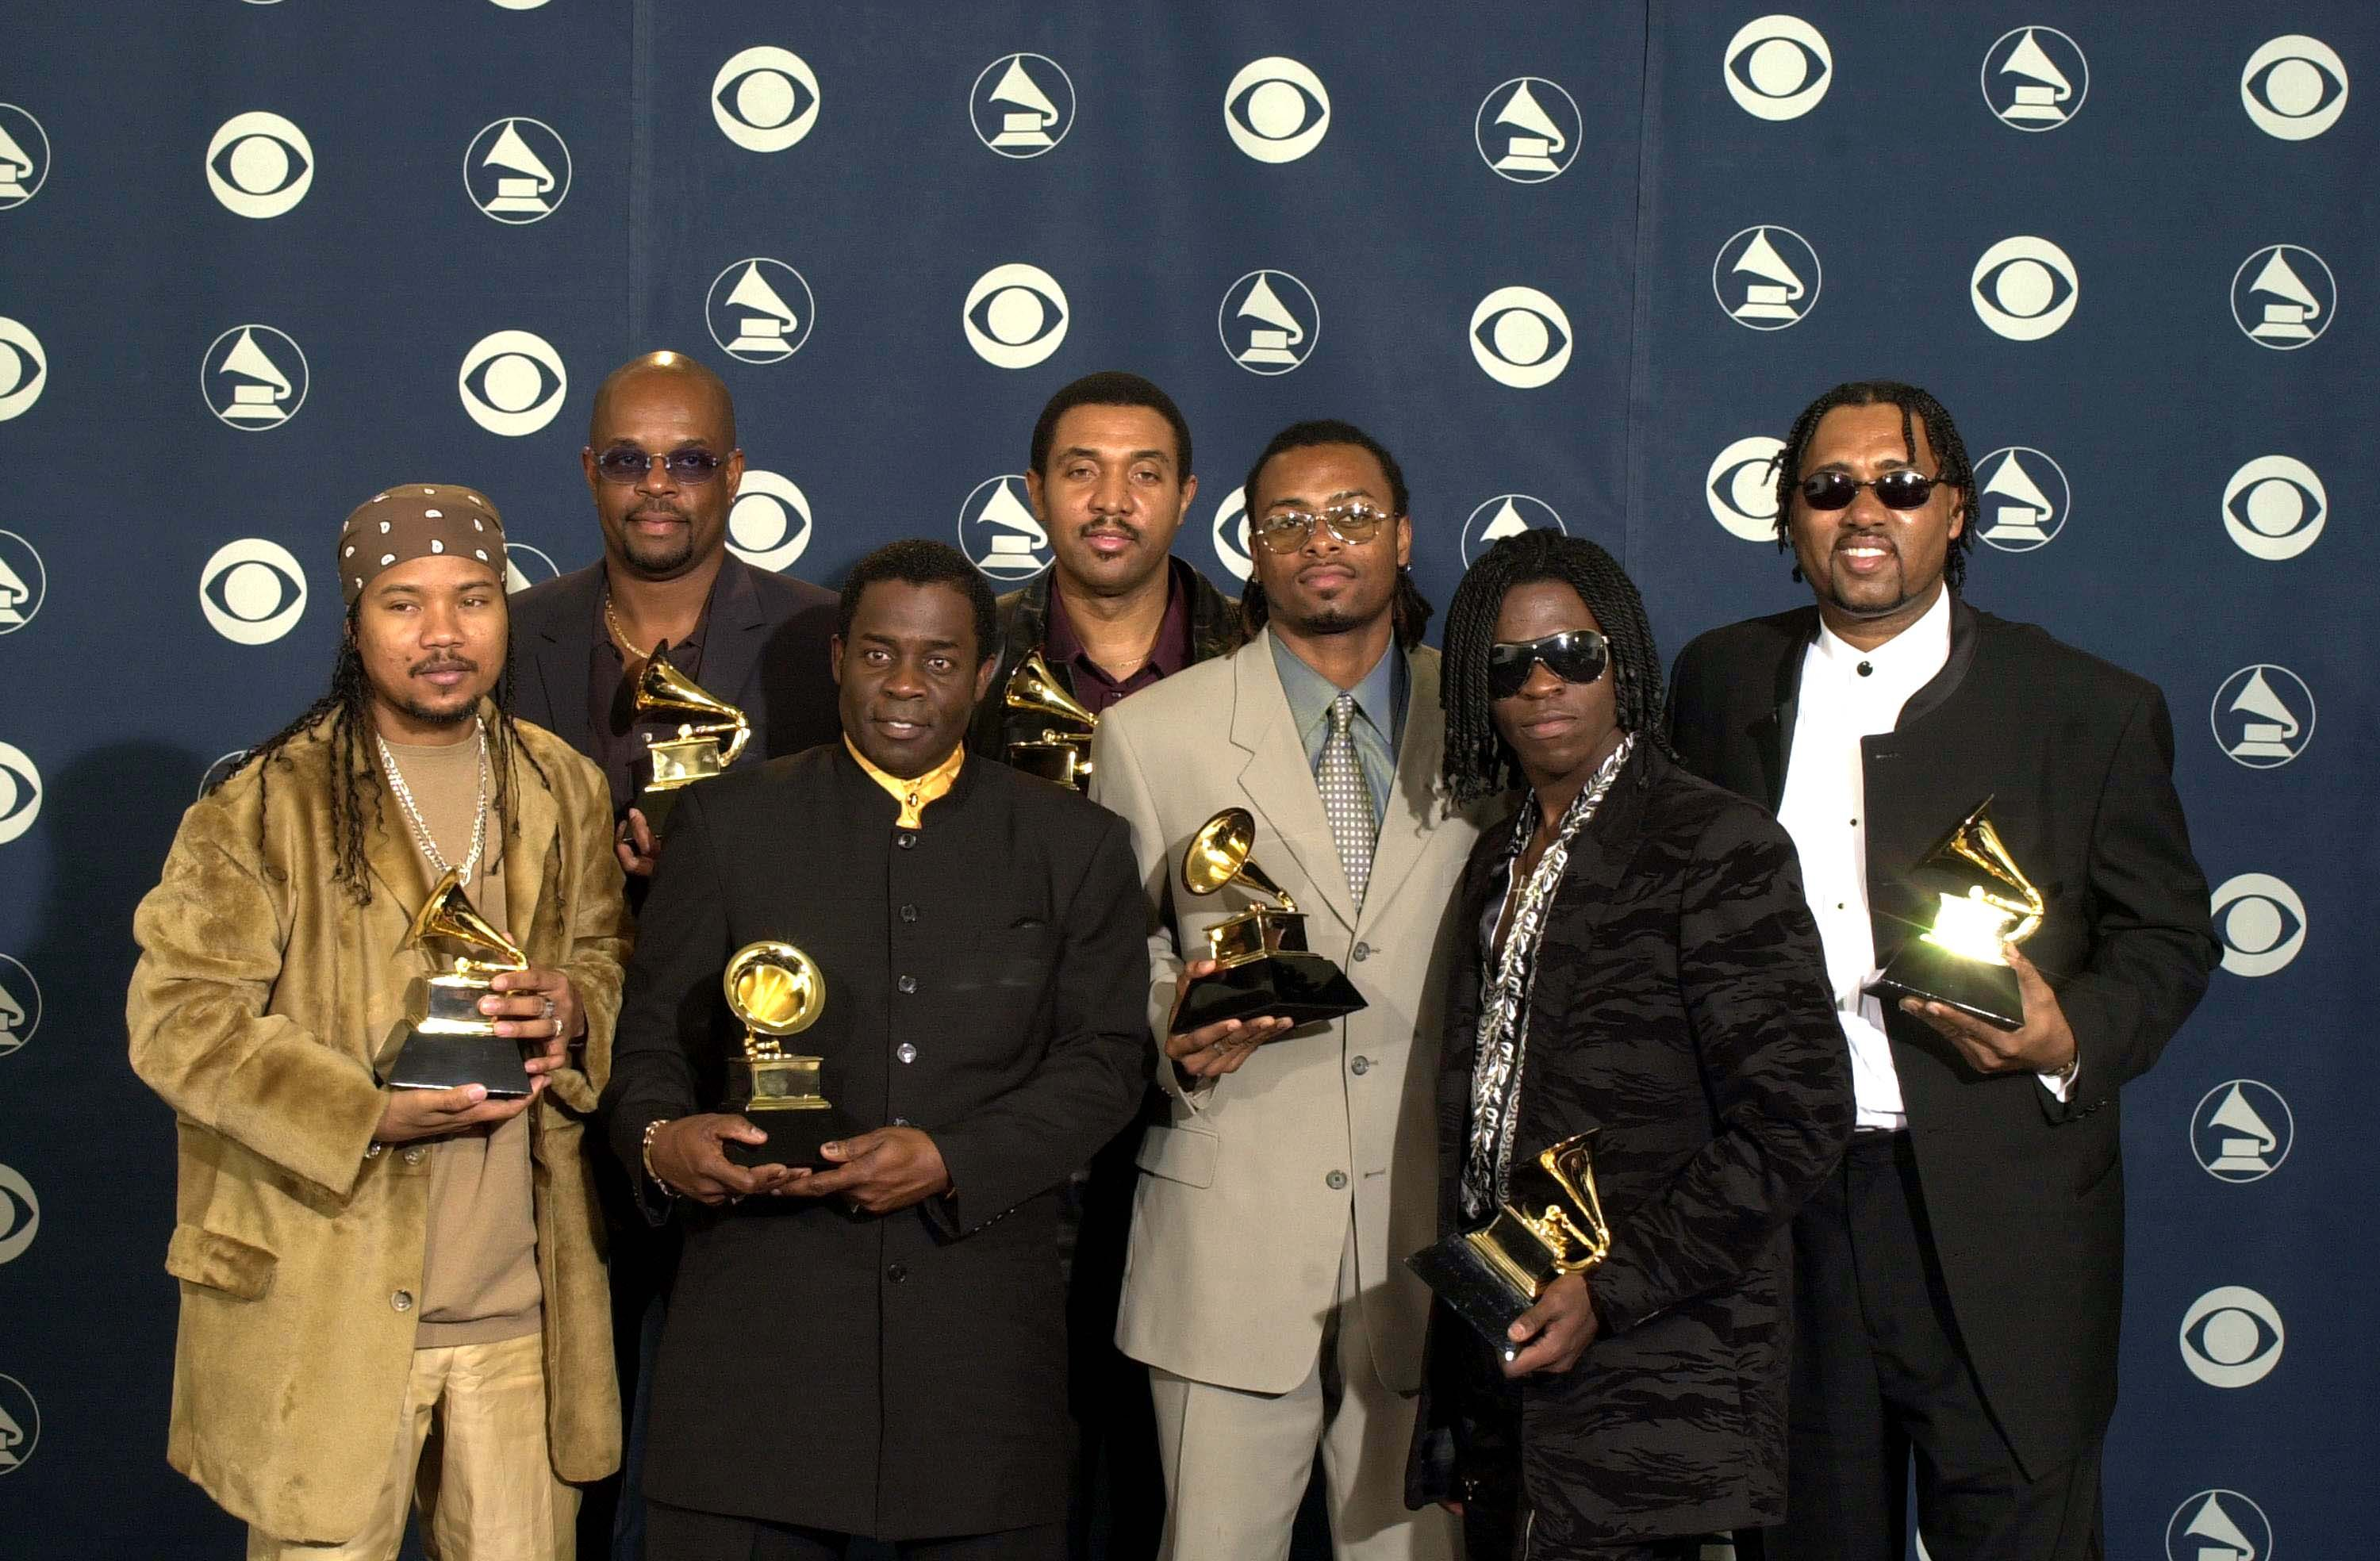 43rd Annual Grammy Awards Backstage